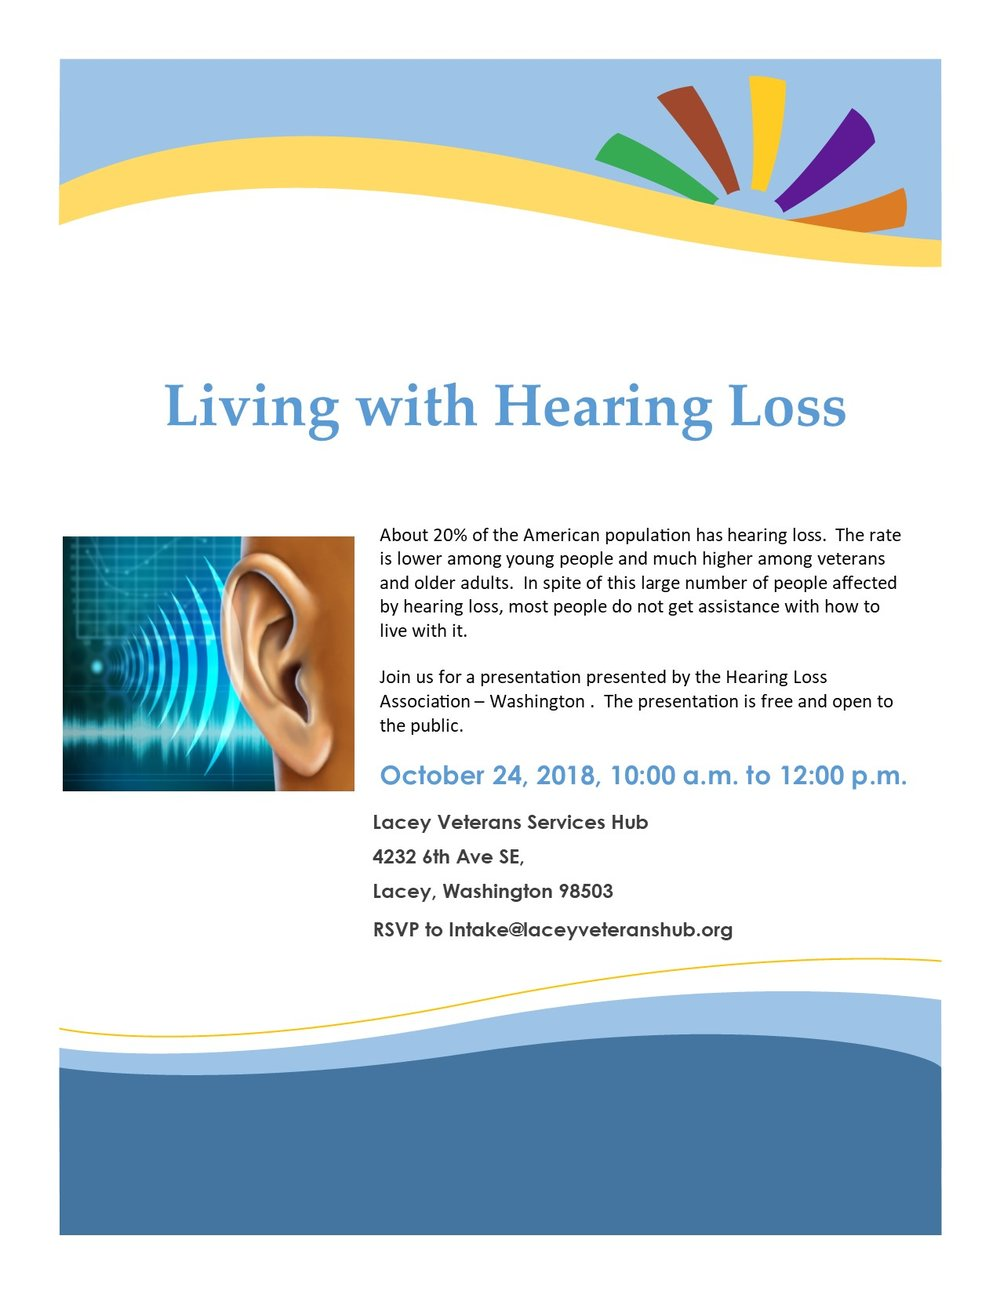 Living with Hearing Loss 2.jpg